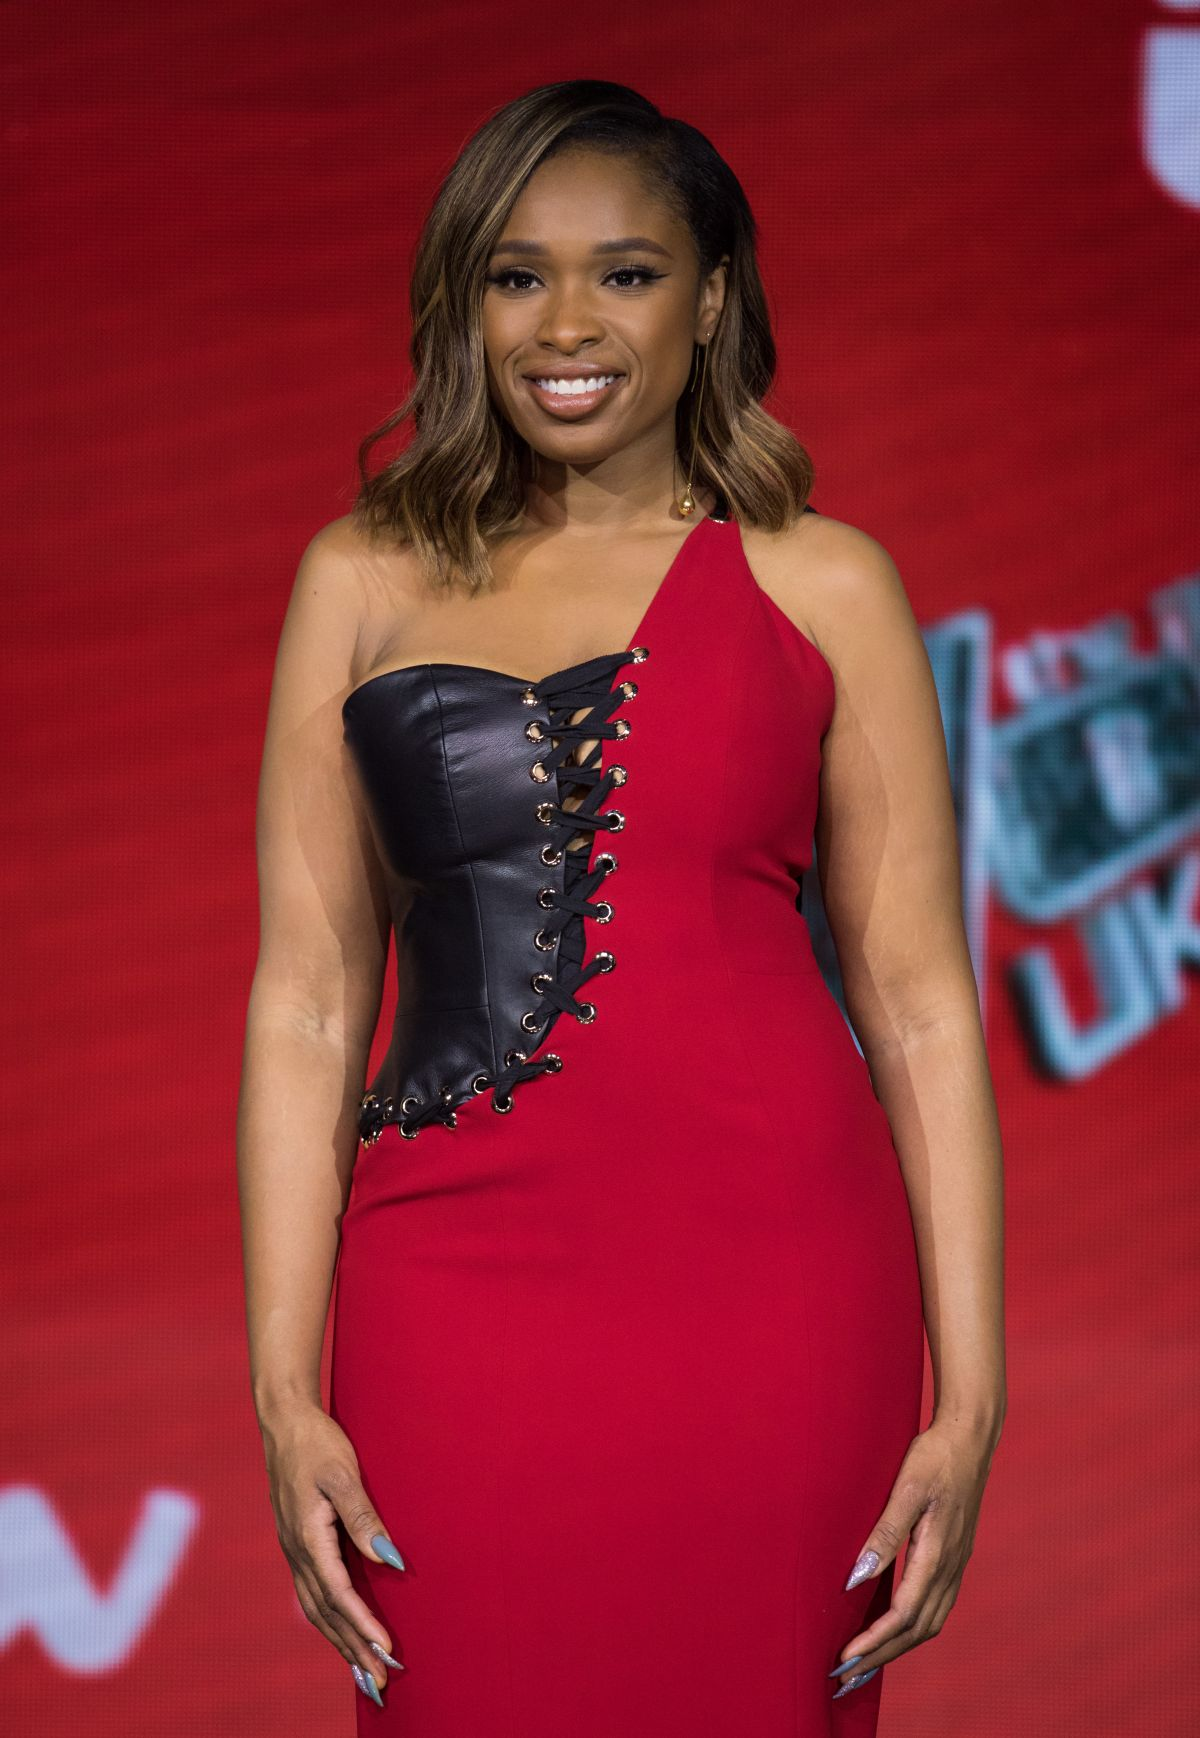 JENNIFER HUDSON at The Voice UK Final Photocall in London ...